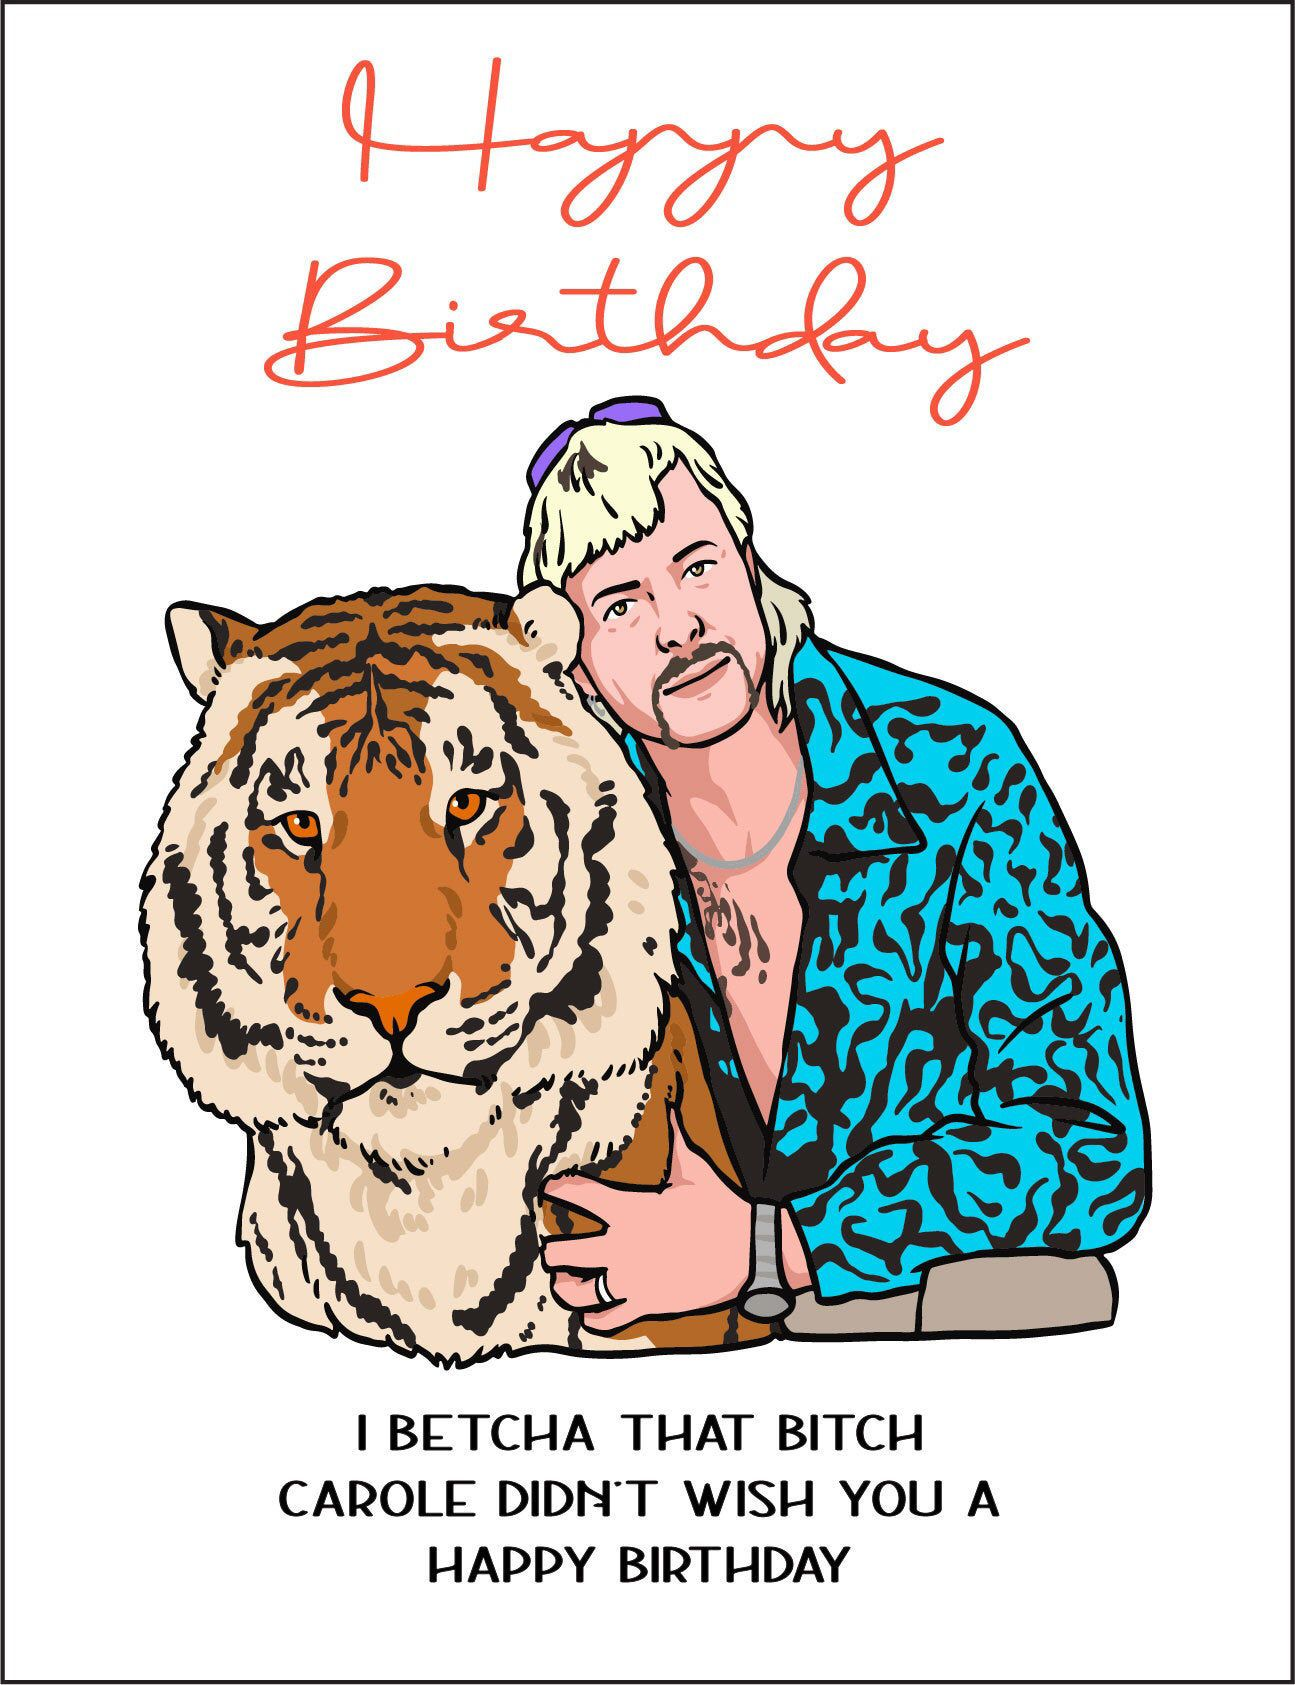 The Tiger King Funny Birthday Card | Happy Birthday From Joe Exotic | Carole Baskin | Tiger King Netflix | Greetings Card